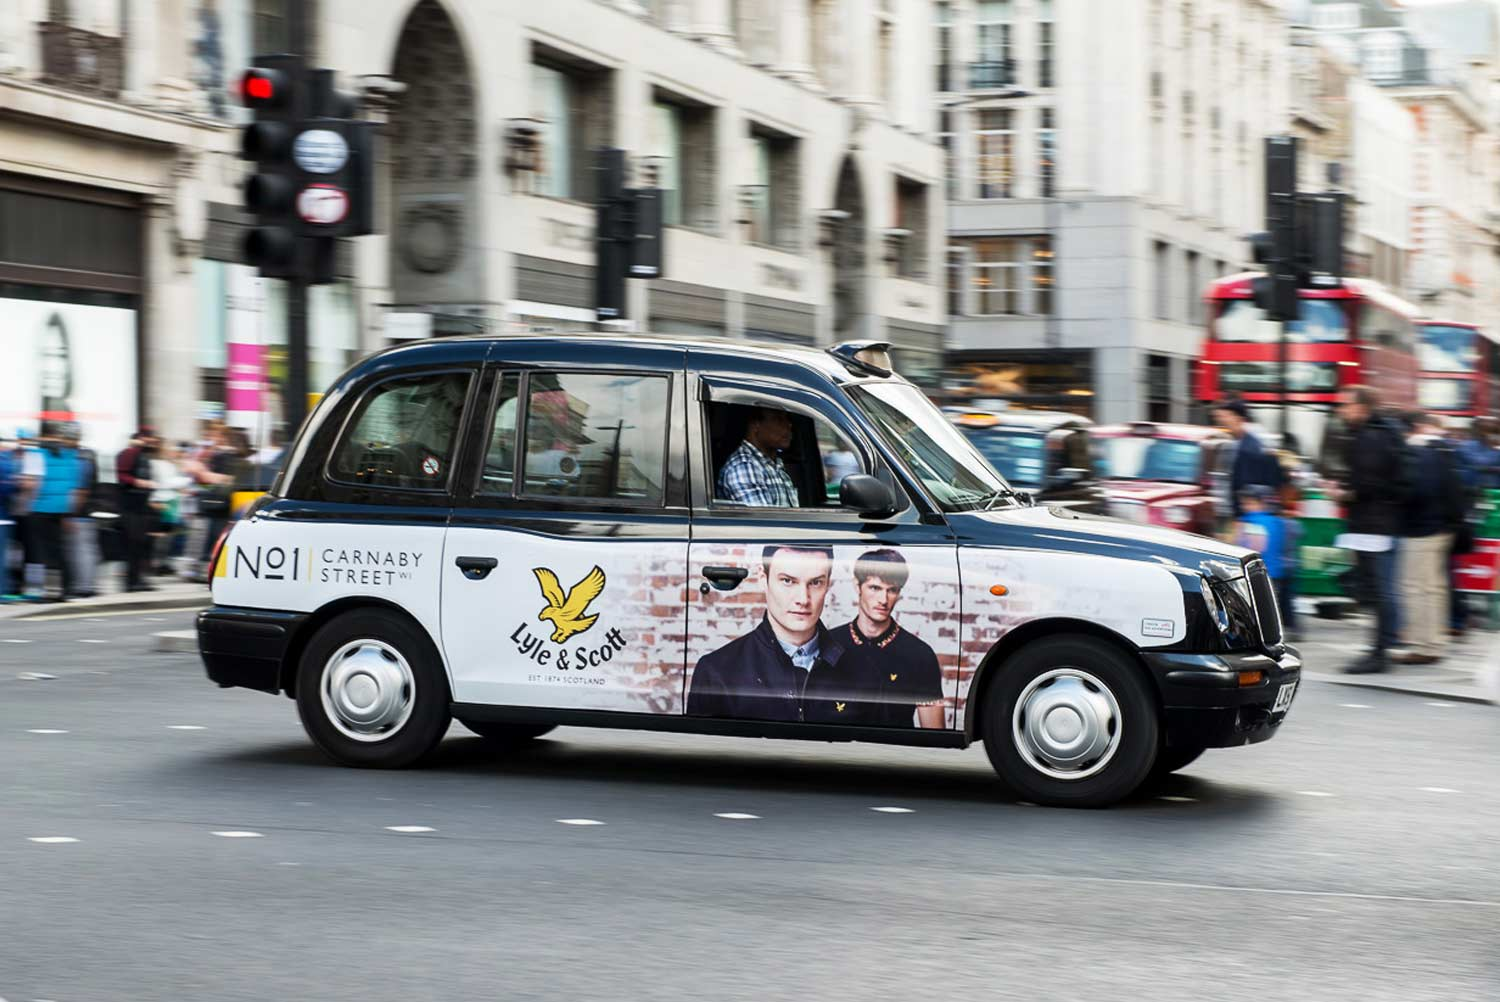 lyle-and-scott-taxi-superside